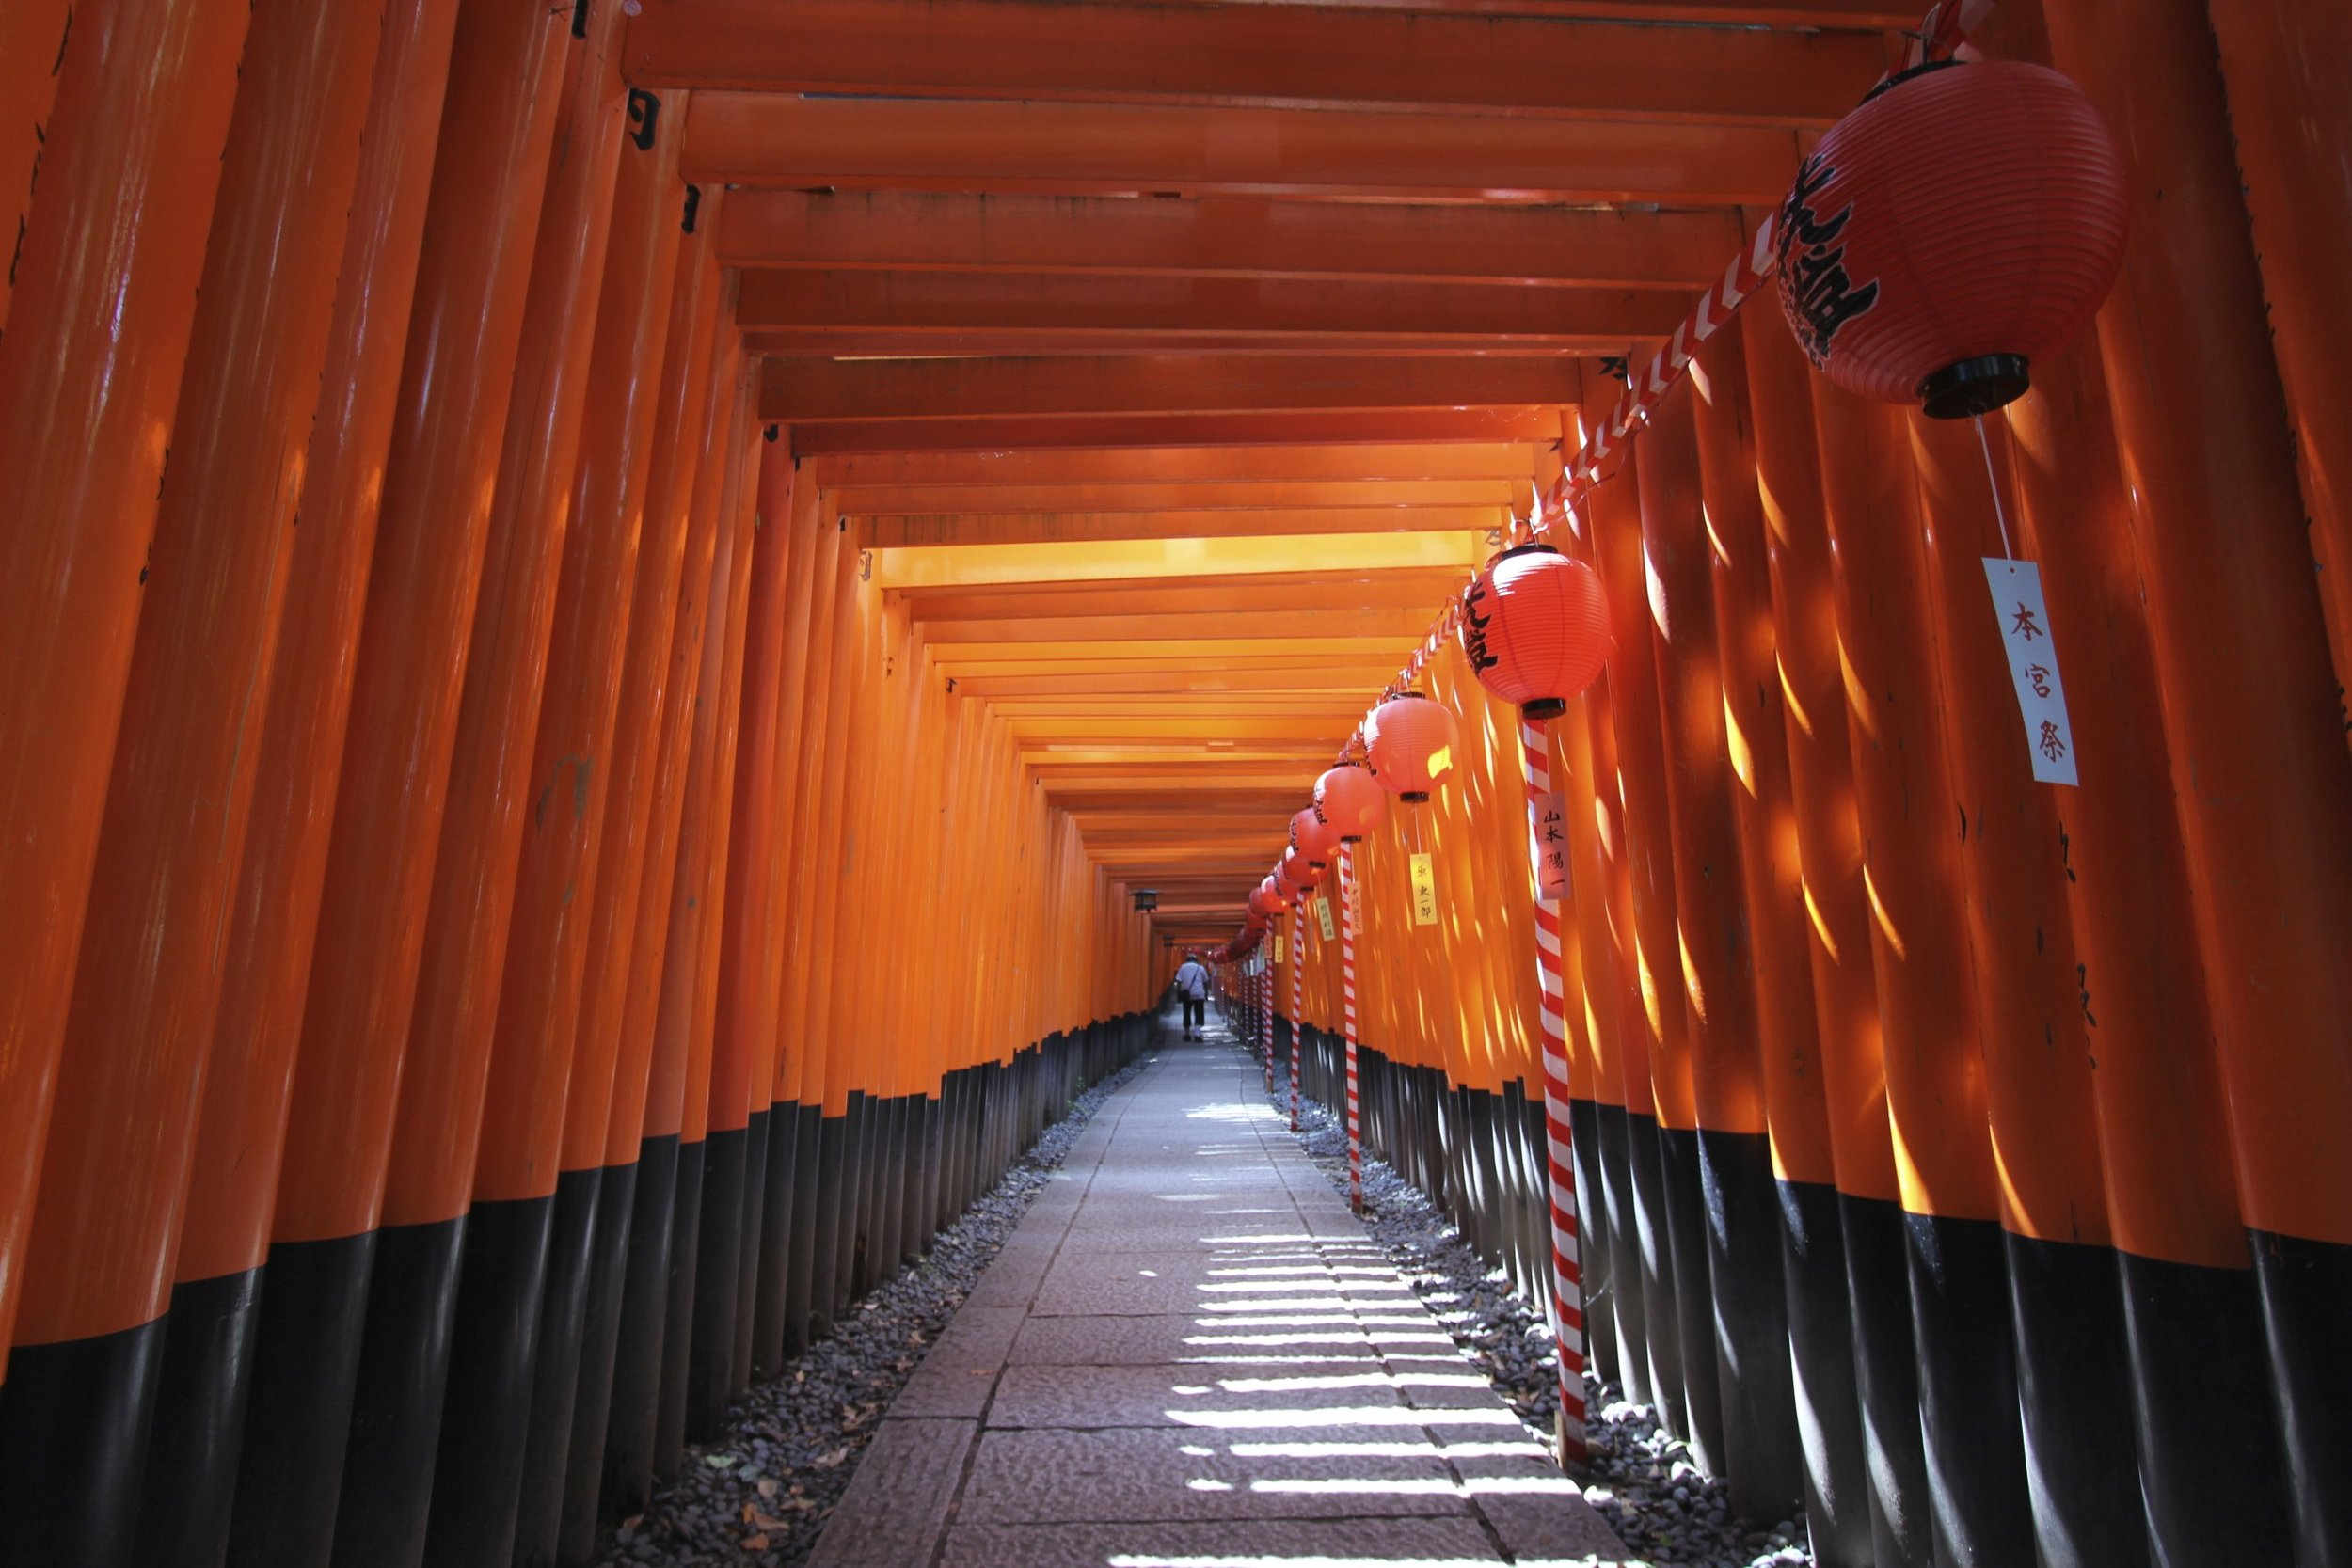 The red color has come to be identified with Inari, because of the prevalence of its use among Inari shrines and their torii.